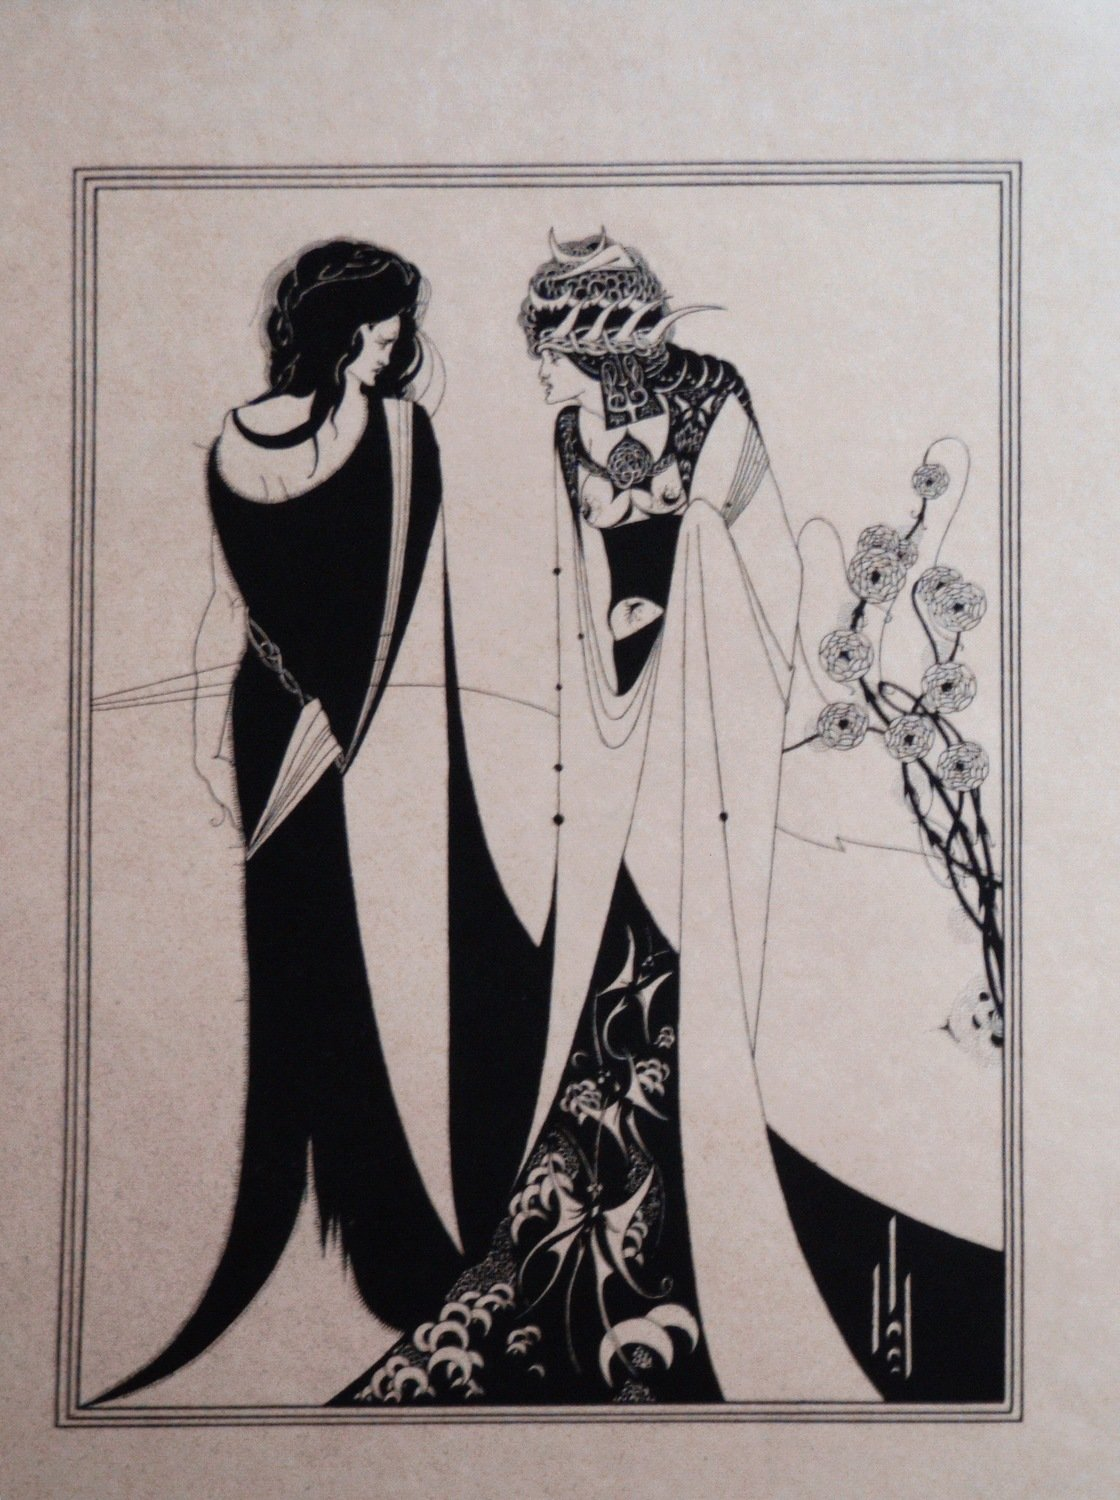 1920s Aubrey Beardsley Lithograph Salome and John the Baptist - Illustration For Oscar Wilde